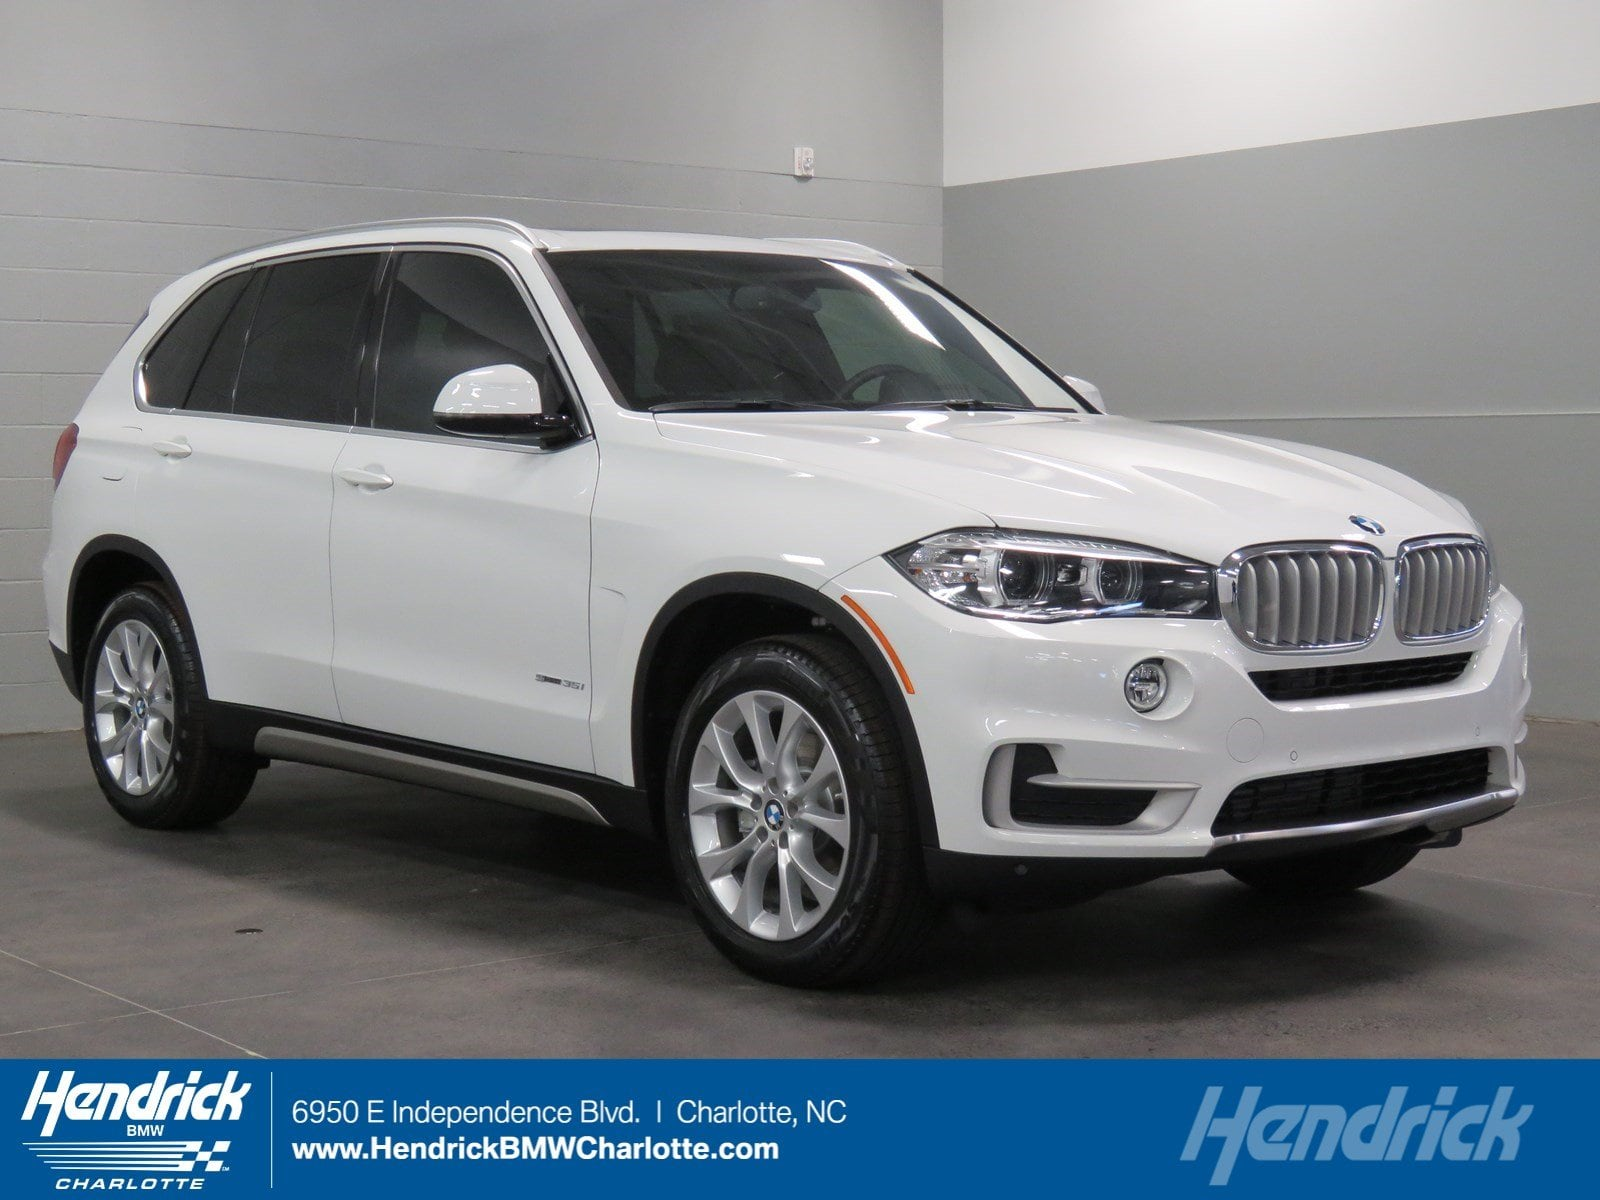 Cars for Sale Under 10000 In Charlotte Nc Fresh 2018 Bmw X5 for Sale In Charlotte